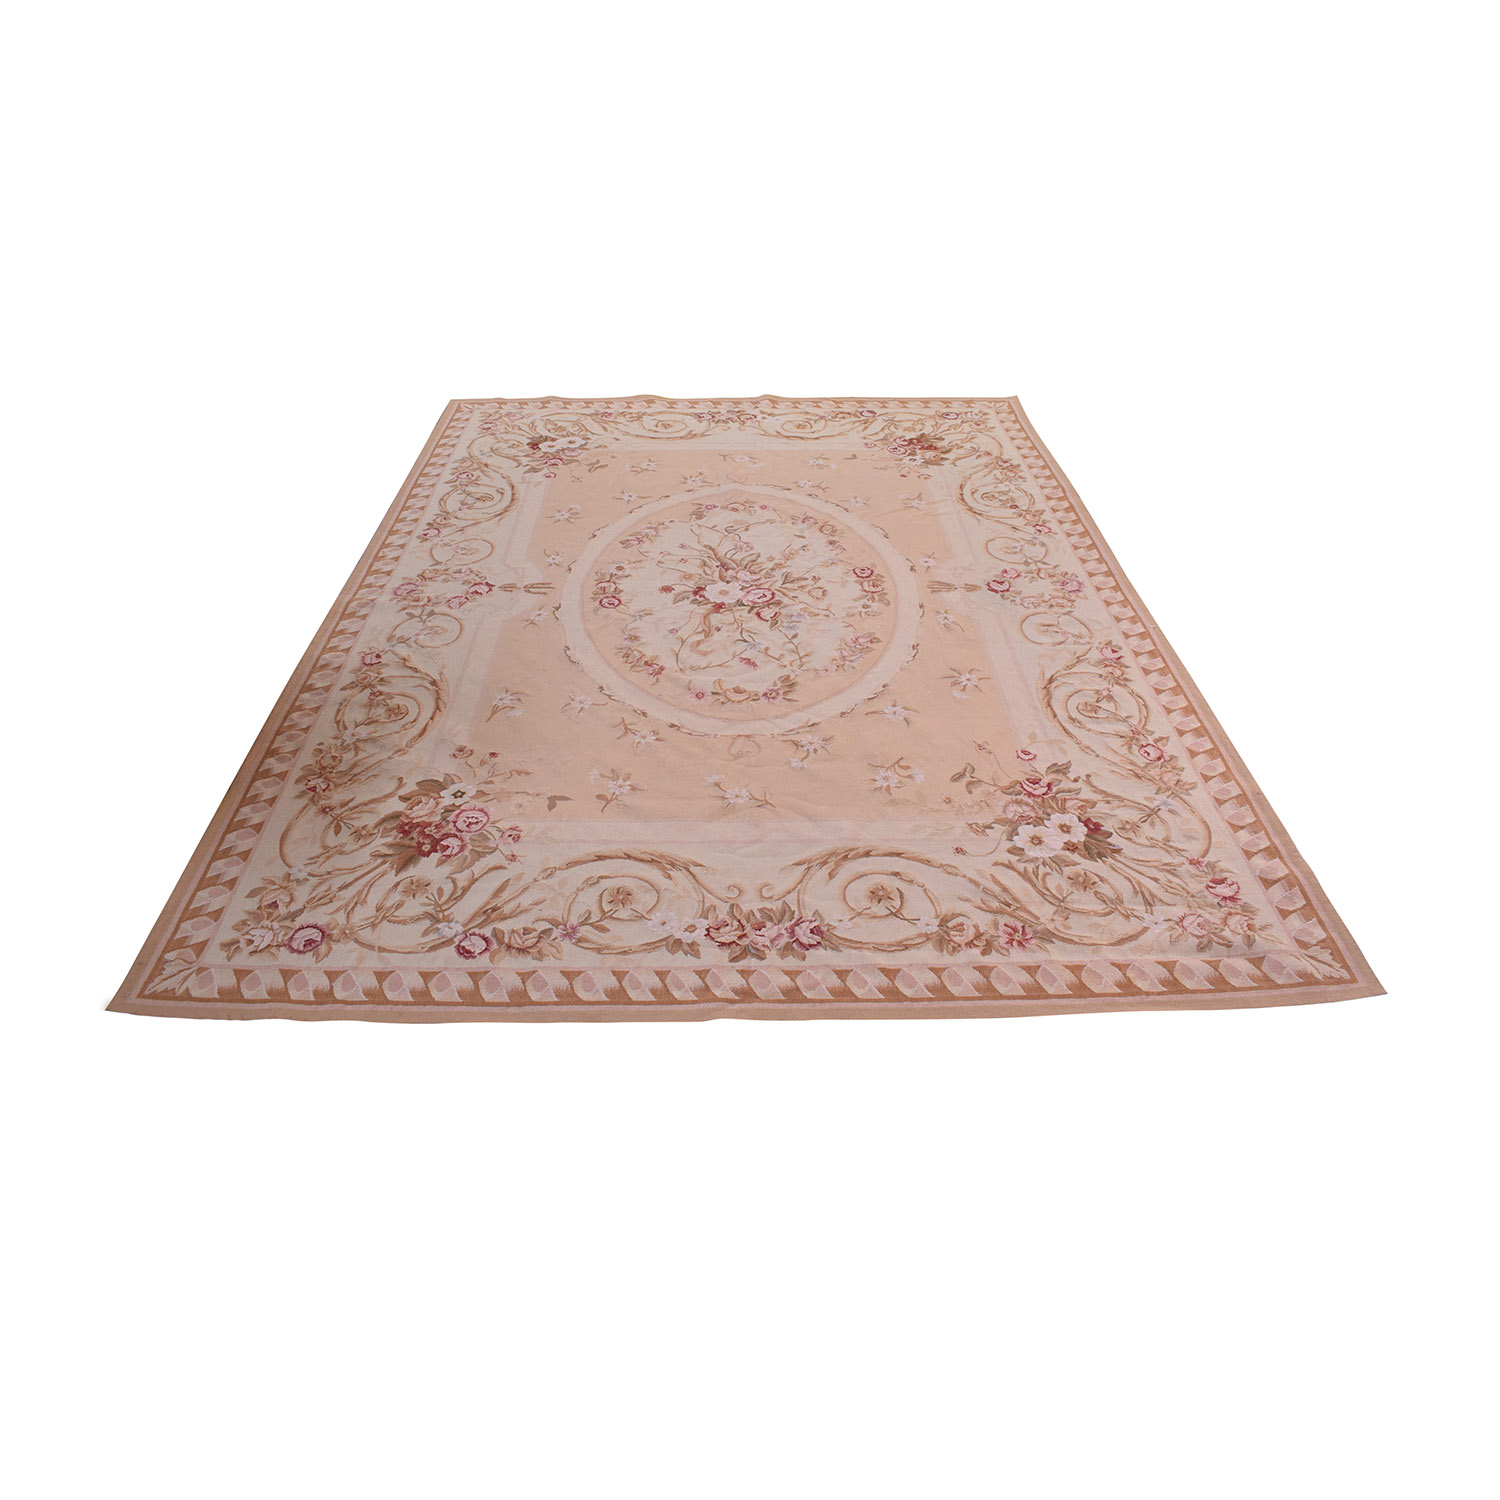 Country Carpet Patterned Area Rug Country Carpet